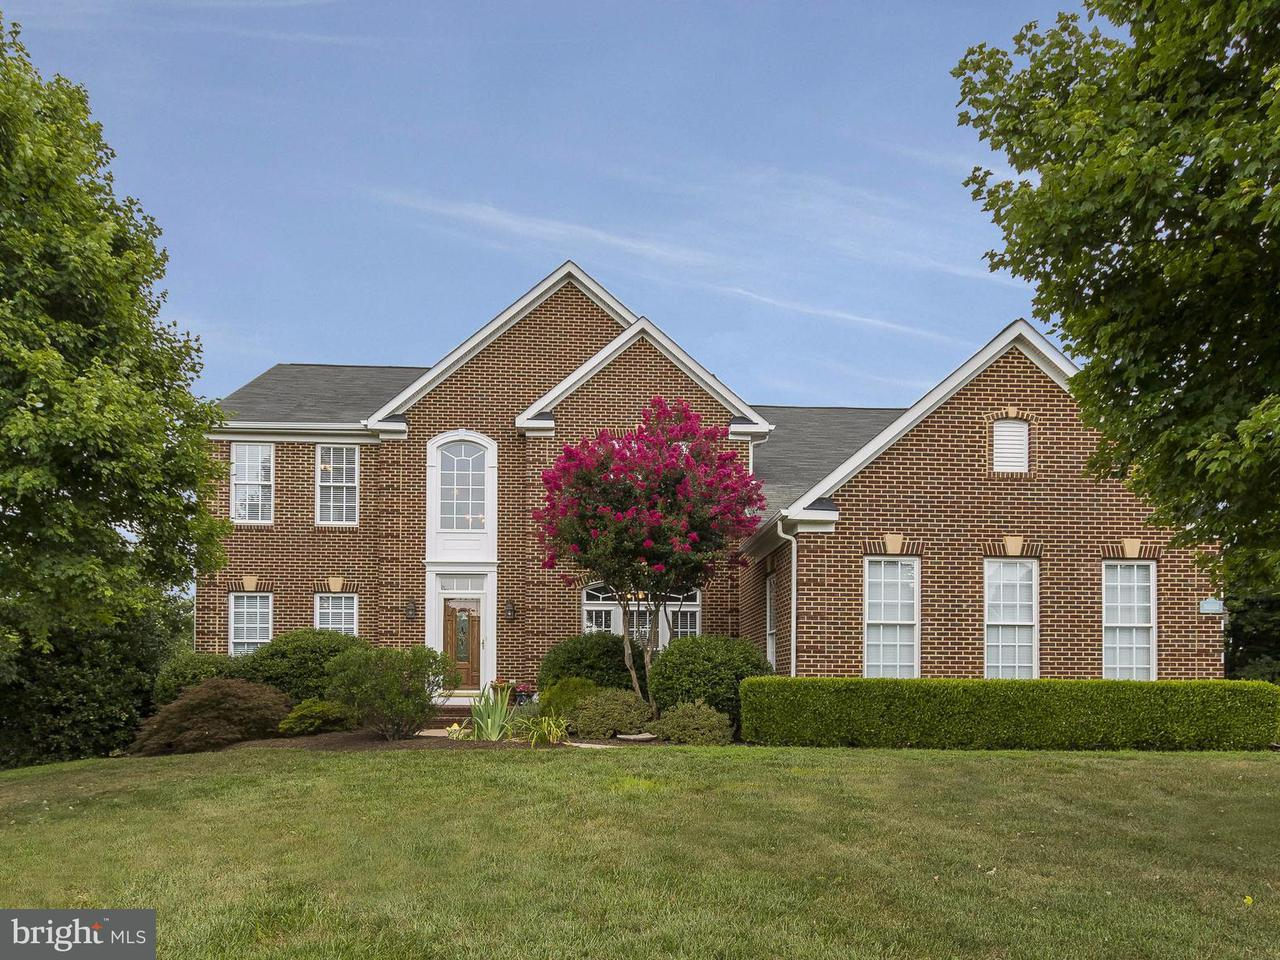 Single Family Home for Sale at 19133 John William Place 19133 John William Place Culpeper, Virginia 22701 United States